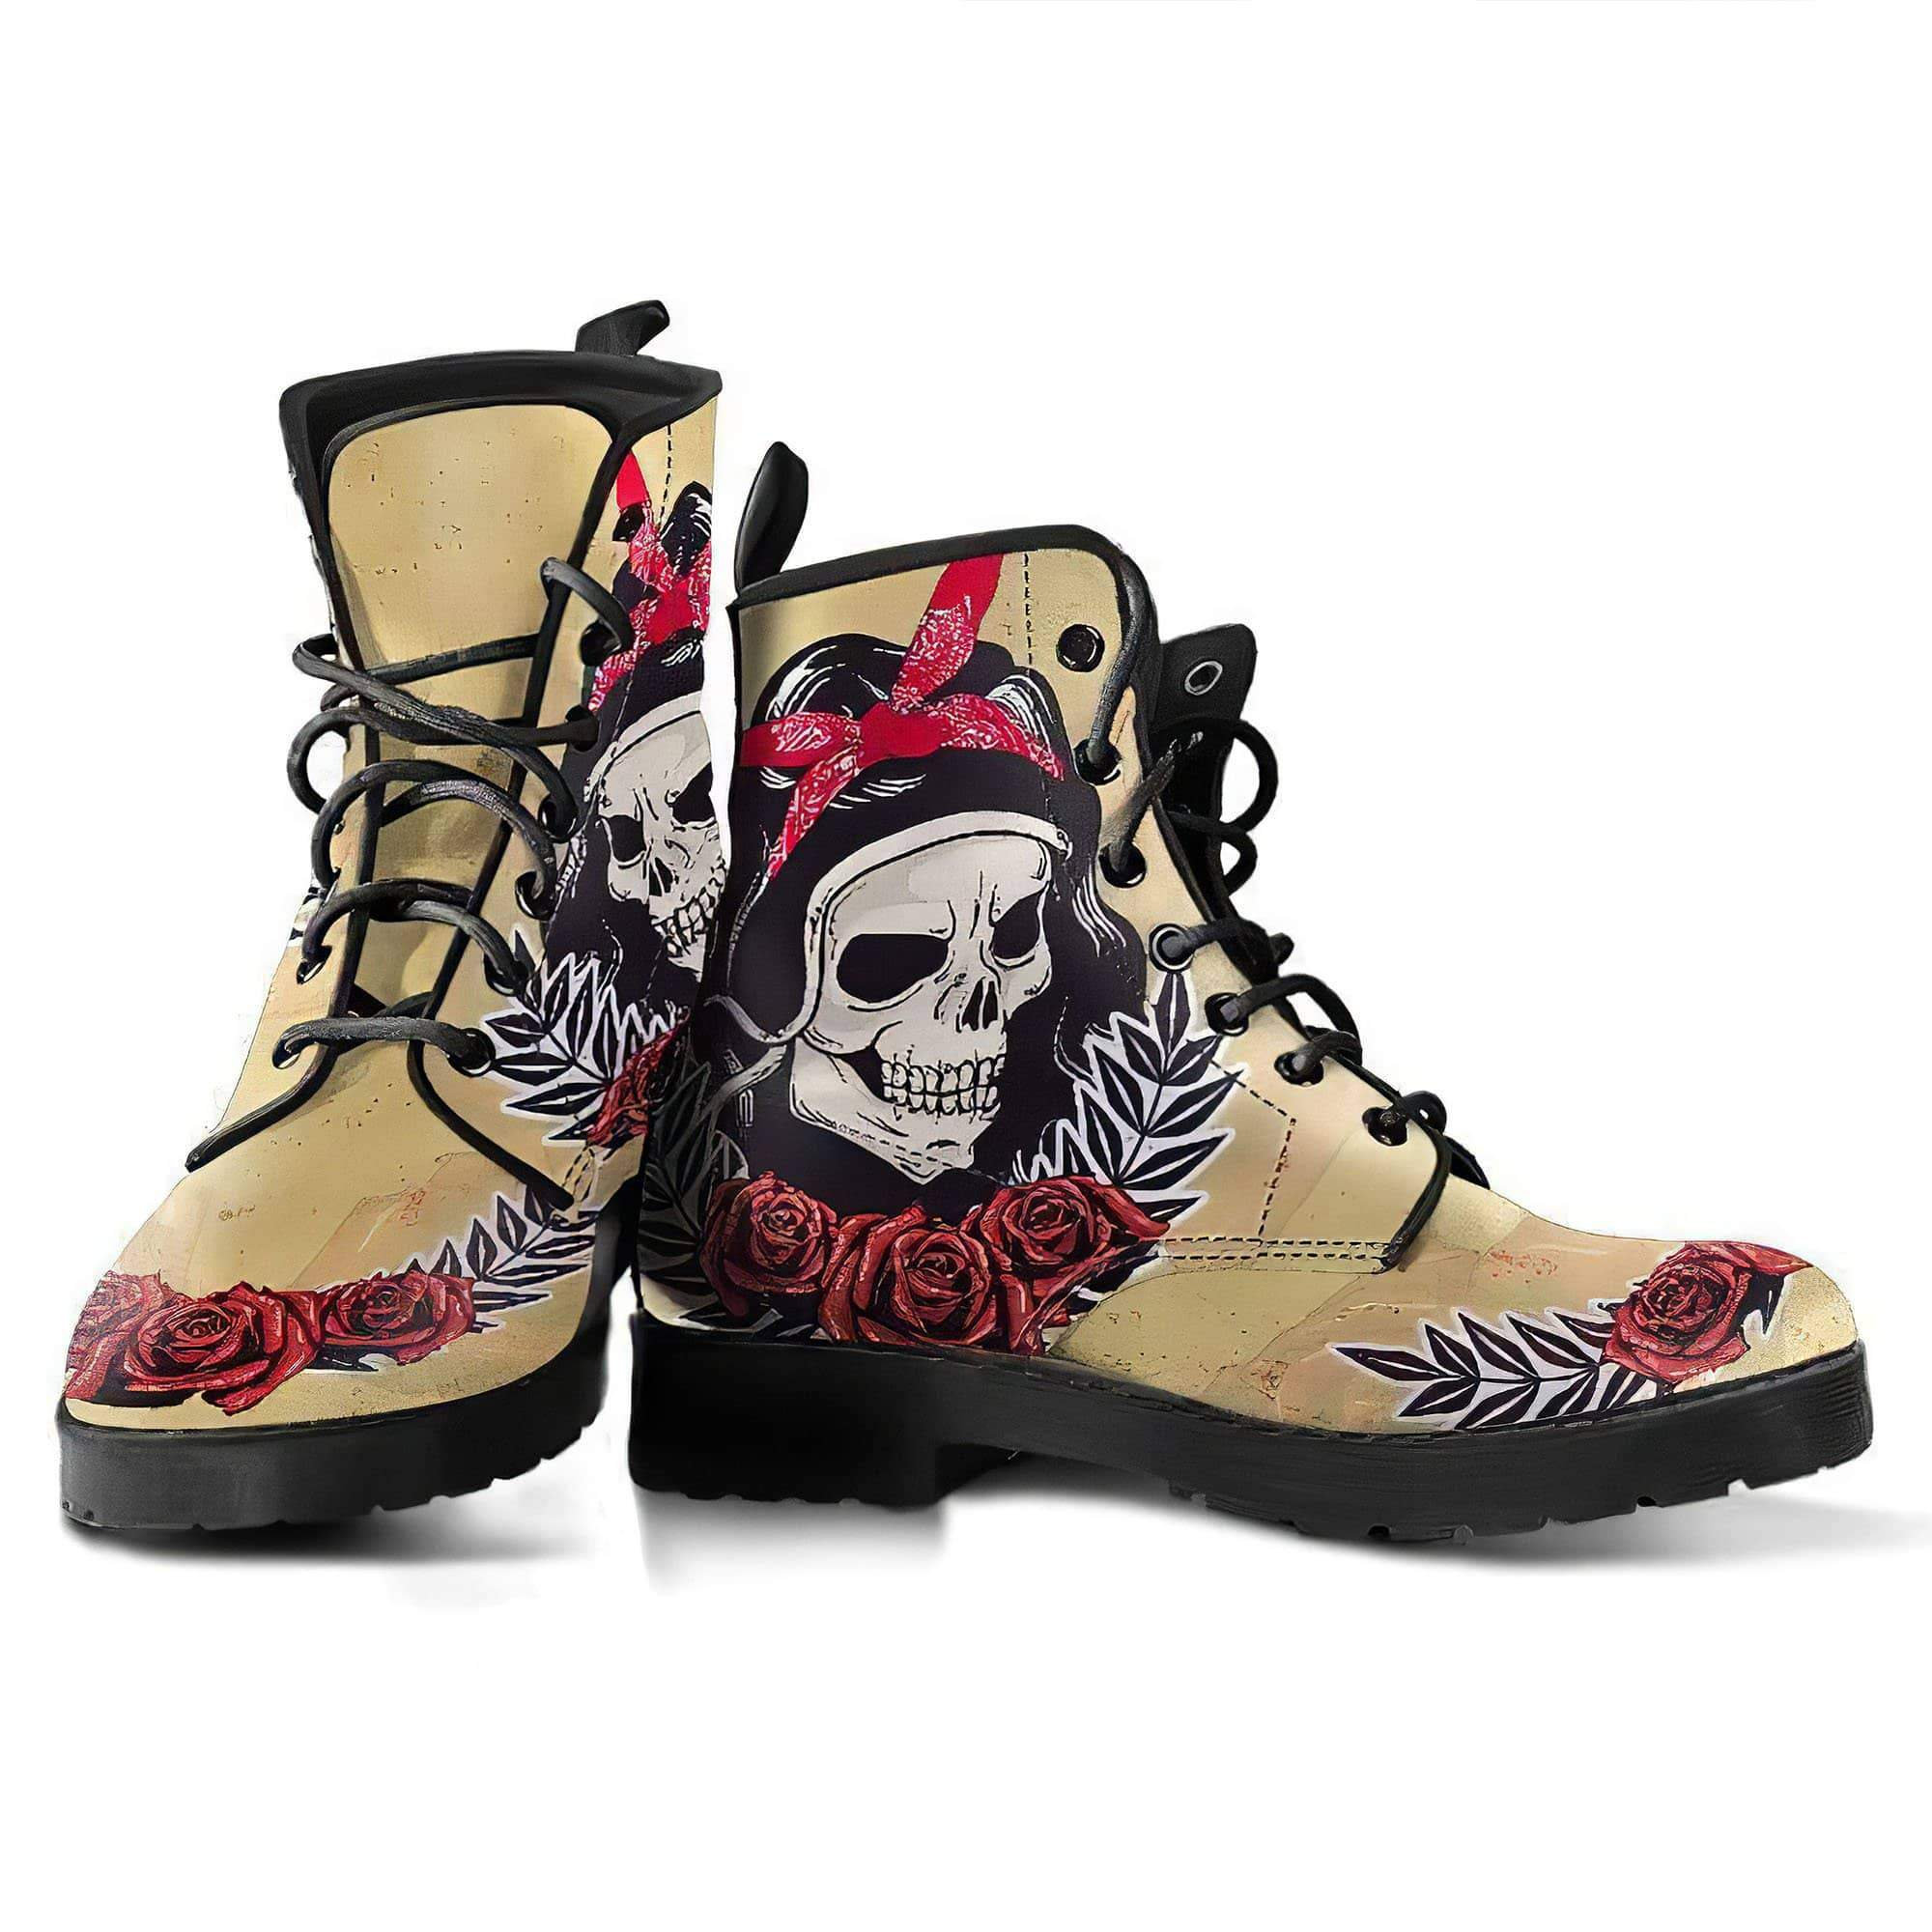 Skull and Roses, Gothic Hiking Boots, Women's Boots, Vegan Leather, Combat Style Boots, Emo Punk Boots, Goth Winter Boots